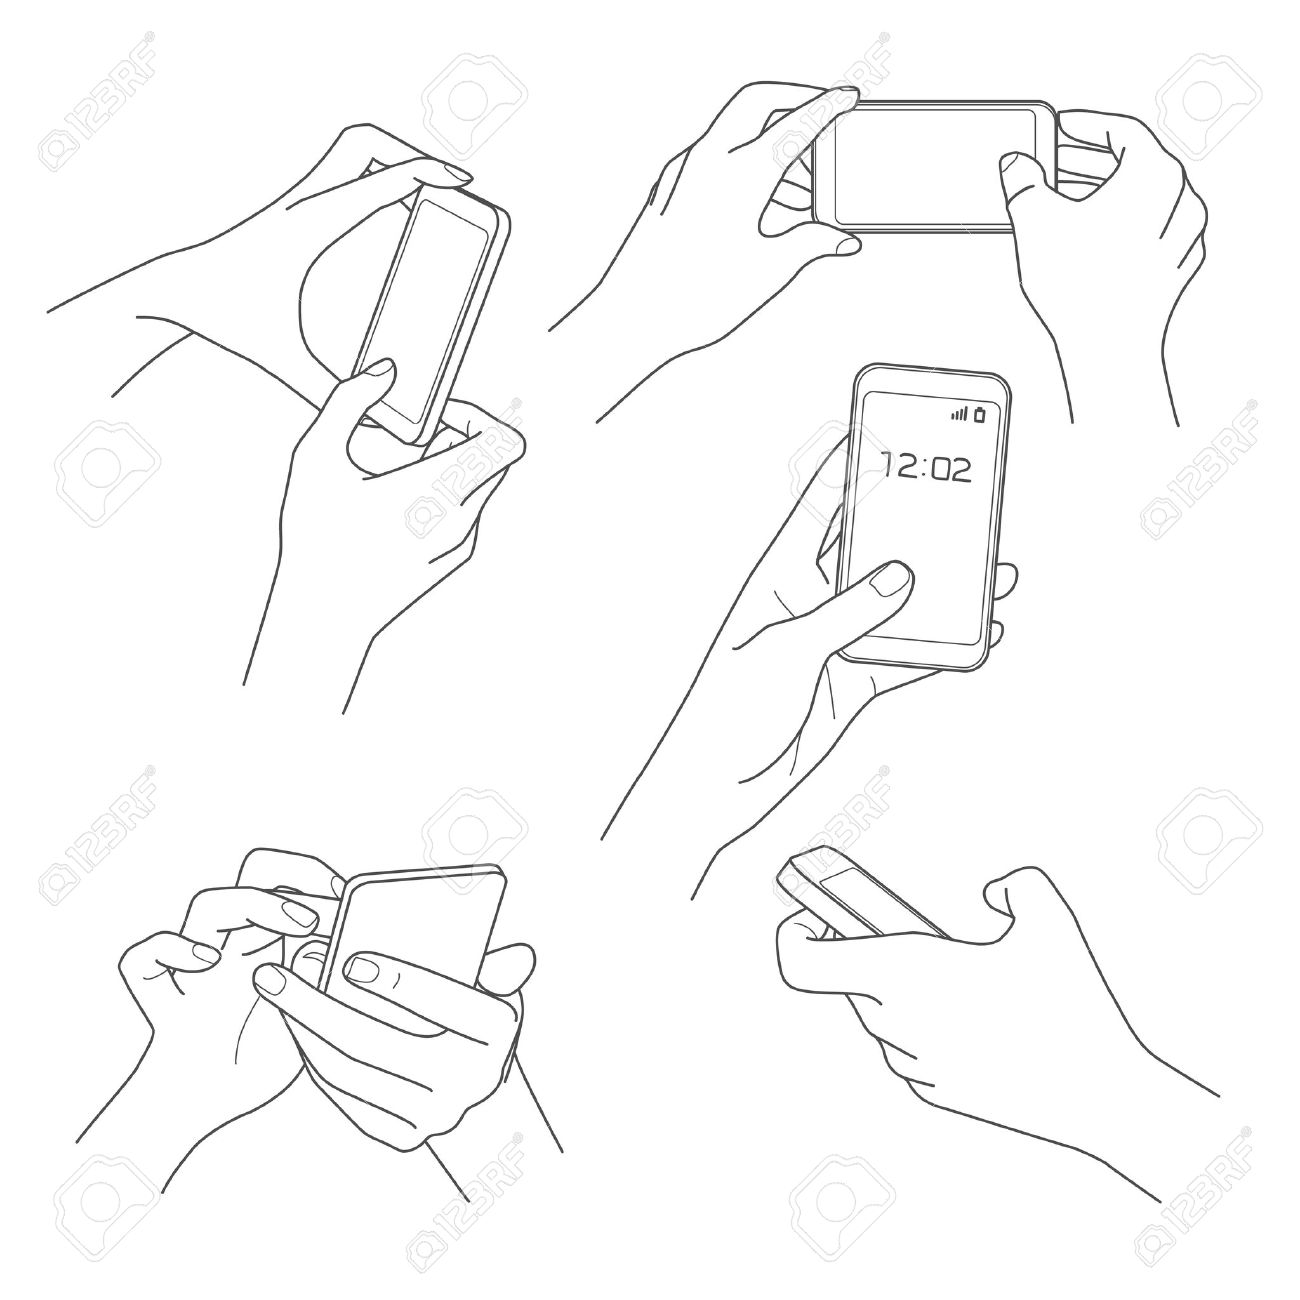 1300x1300 Hand Holding Smartphone Sketch Vector Illustrations Royalty Free